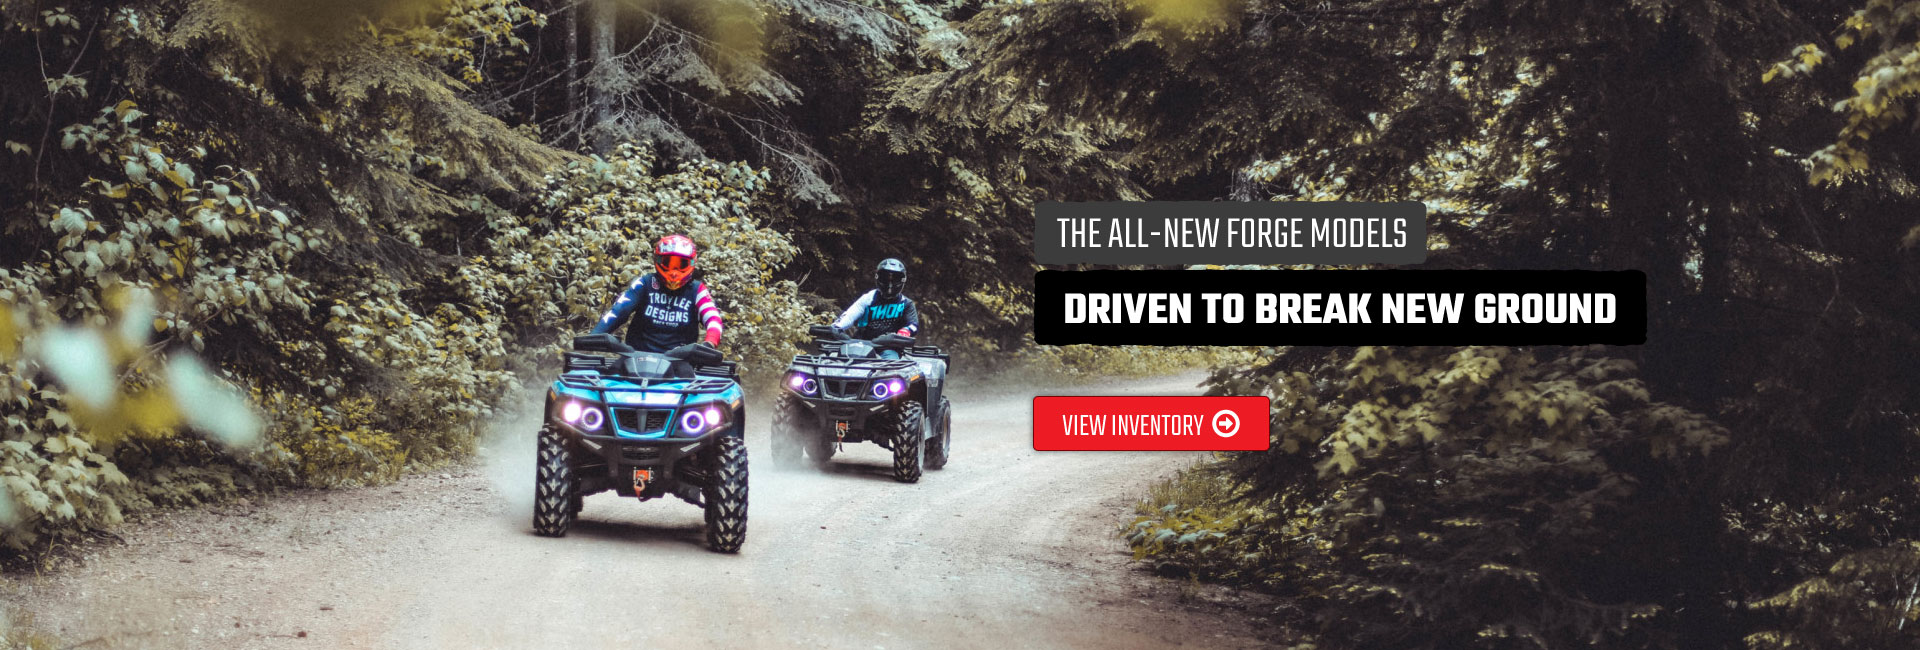 Driven Motorsports - 2020 Forge